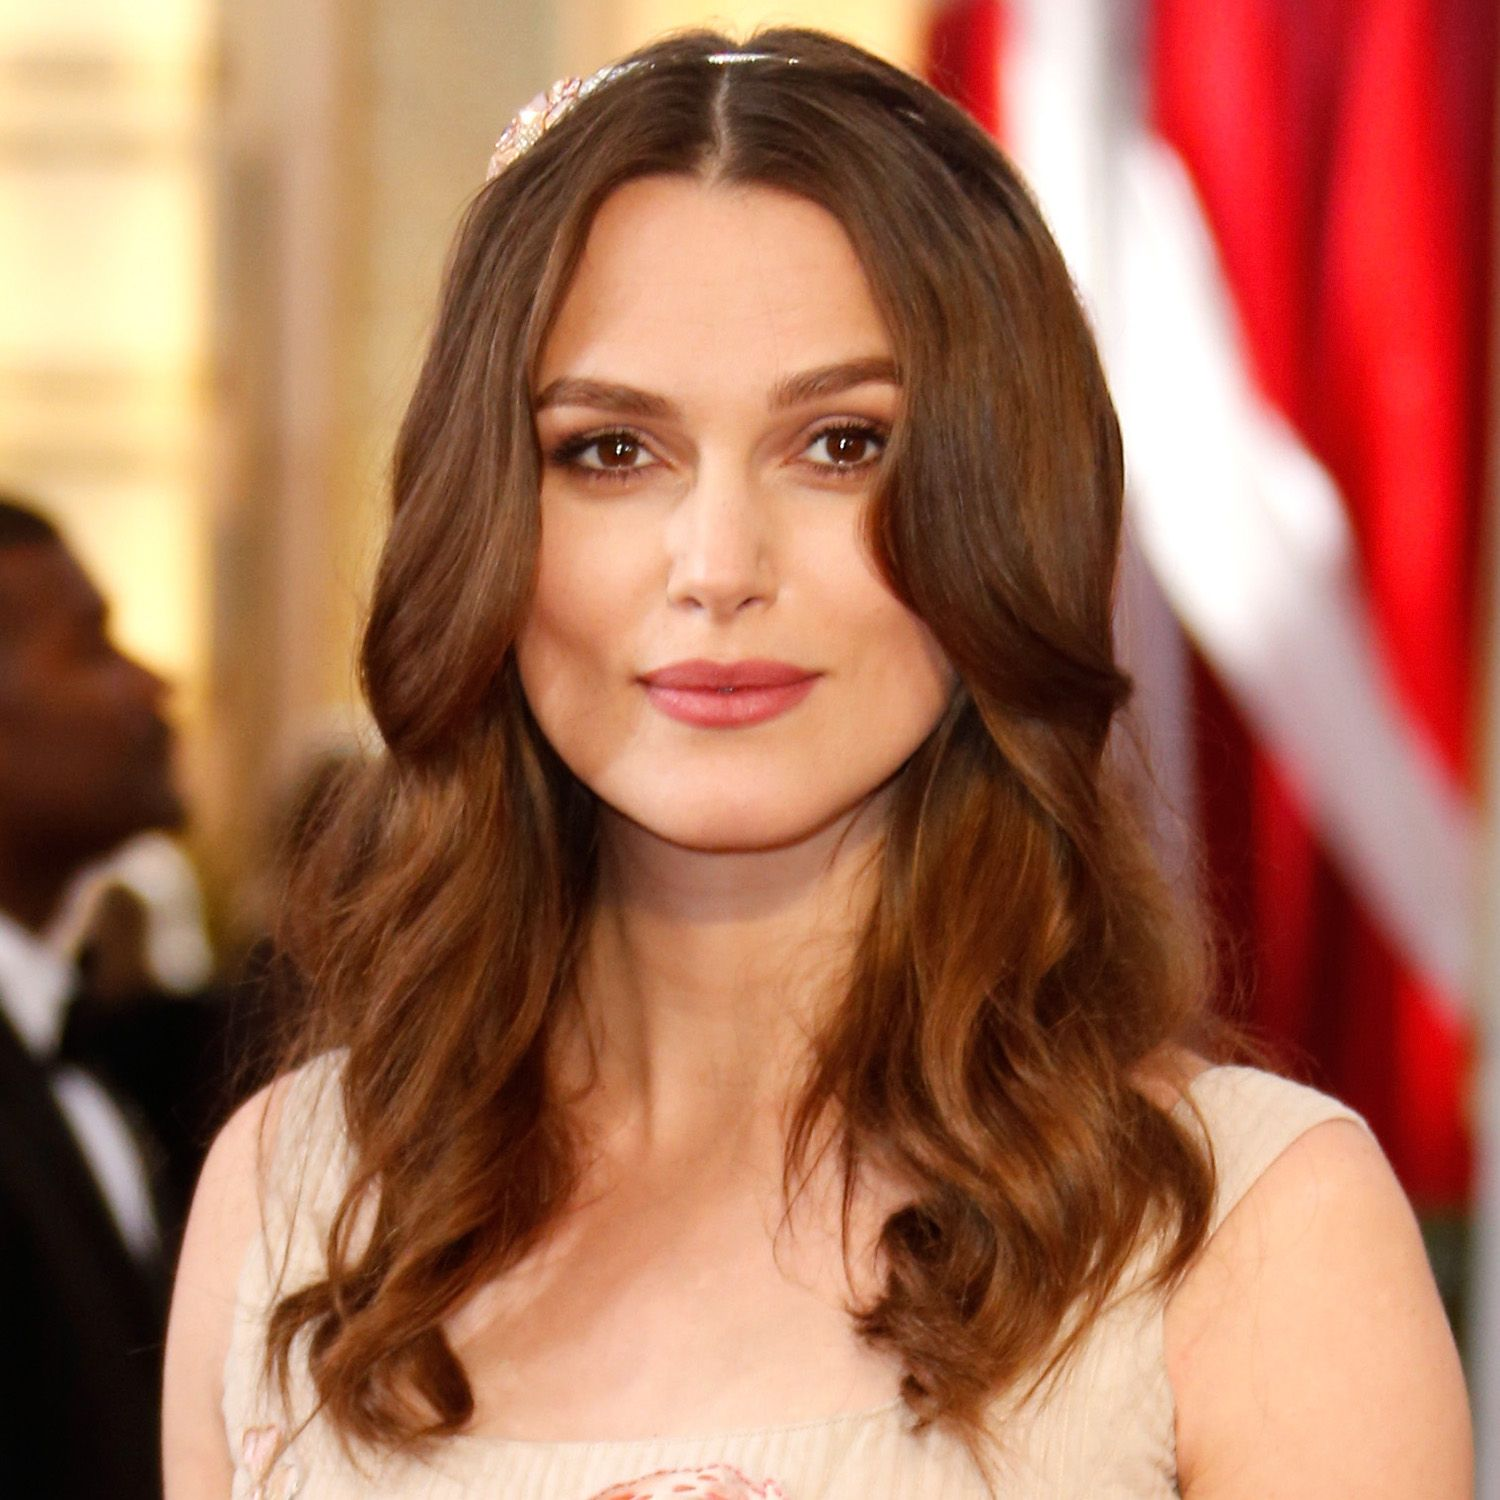 HOLLYWOOD, CA - FEBRUARY 22:  Actress Keira Knightley attends the 87th Annual Academy Awards at Hollywood &amp&#x3B; Highland Center on February 22, 2015 in Hollywood, California.  (Photo by Jeff Vespa/WireImage)